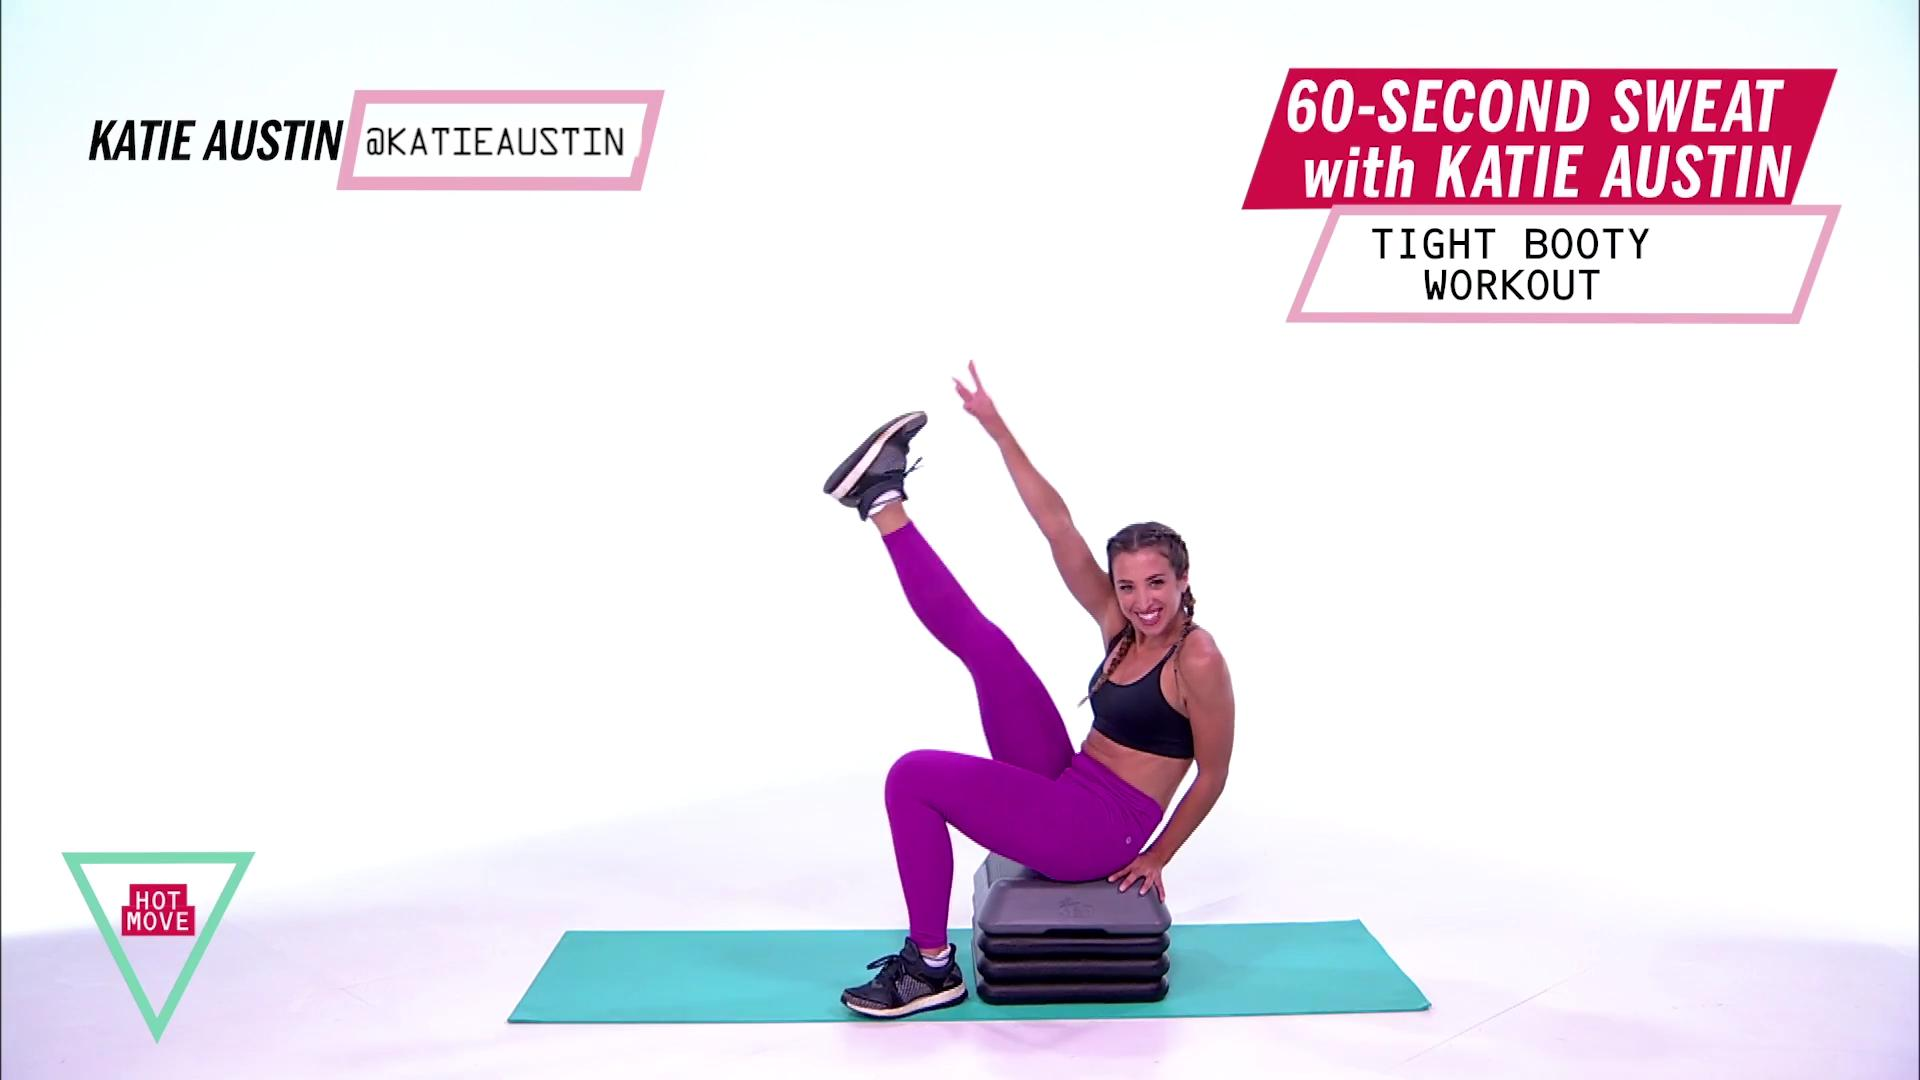 You Can Do Katie Austin's Booty-Tightening Workout in Just 60 Seconds